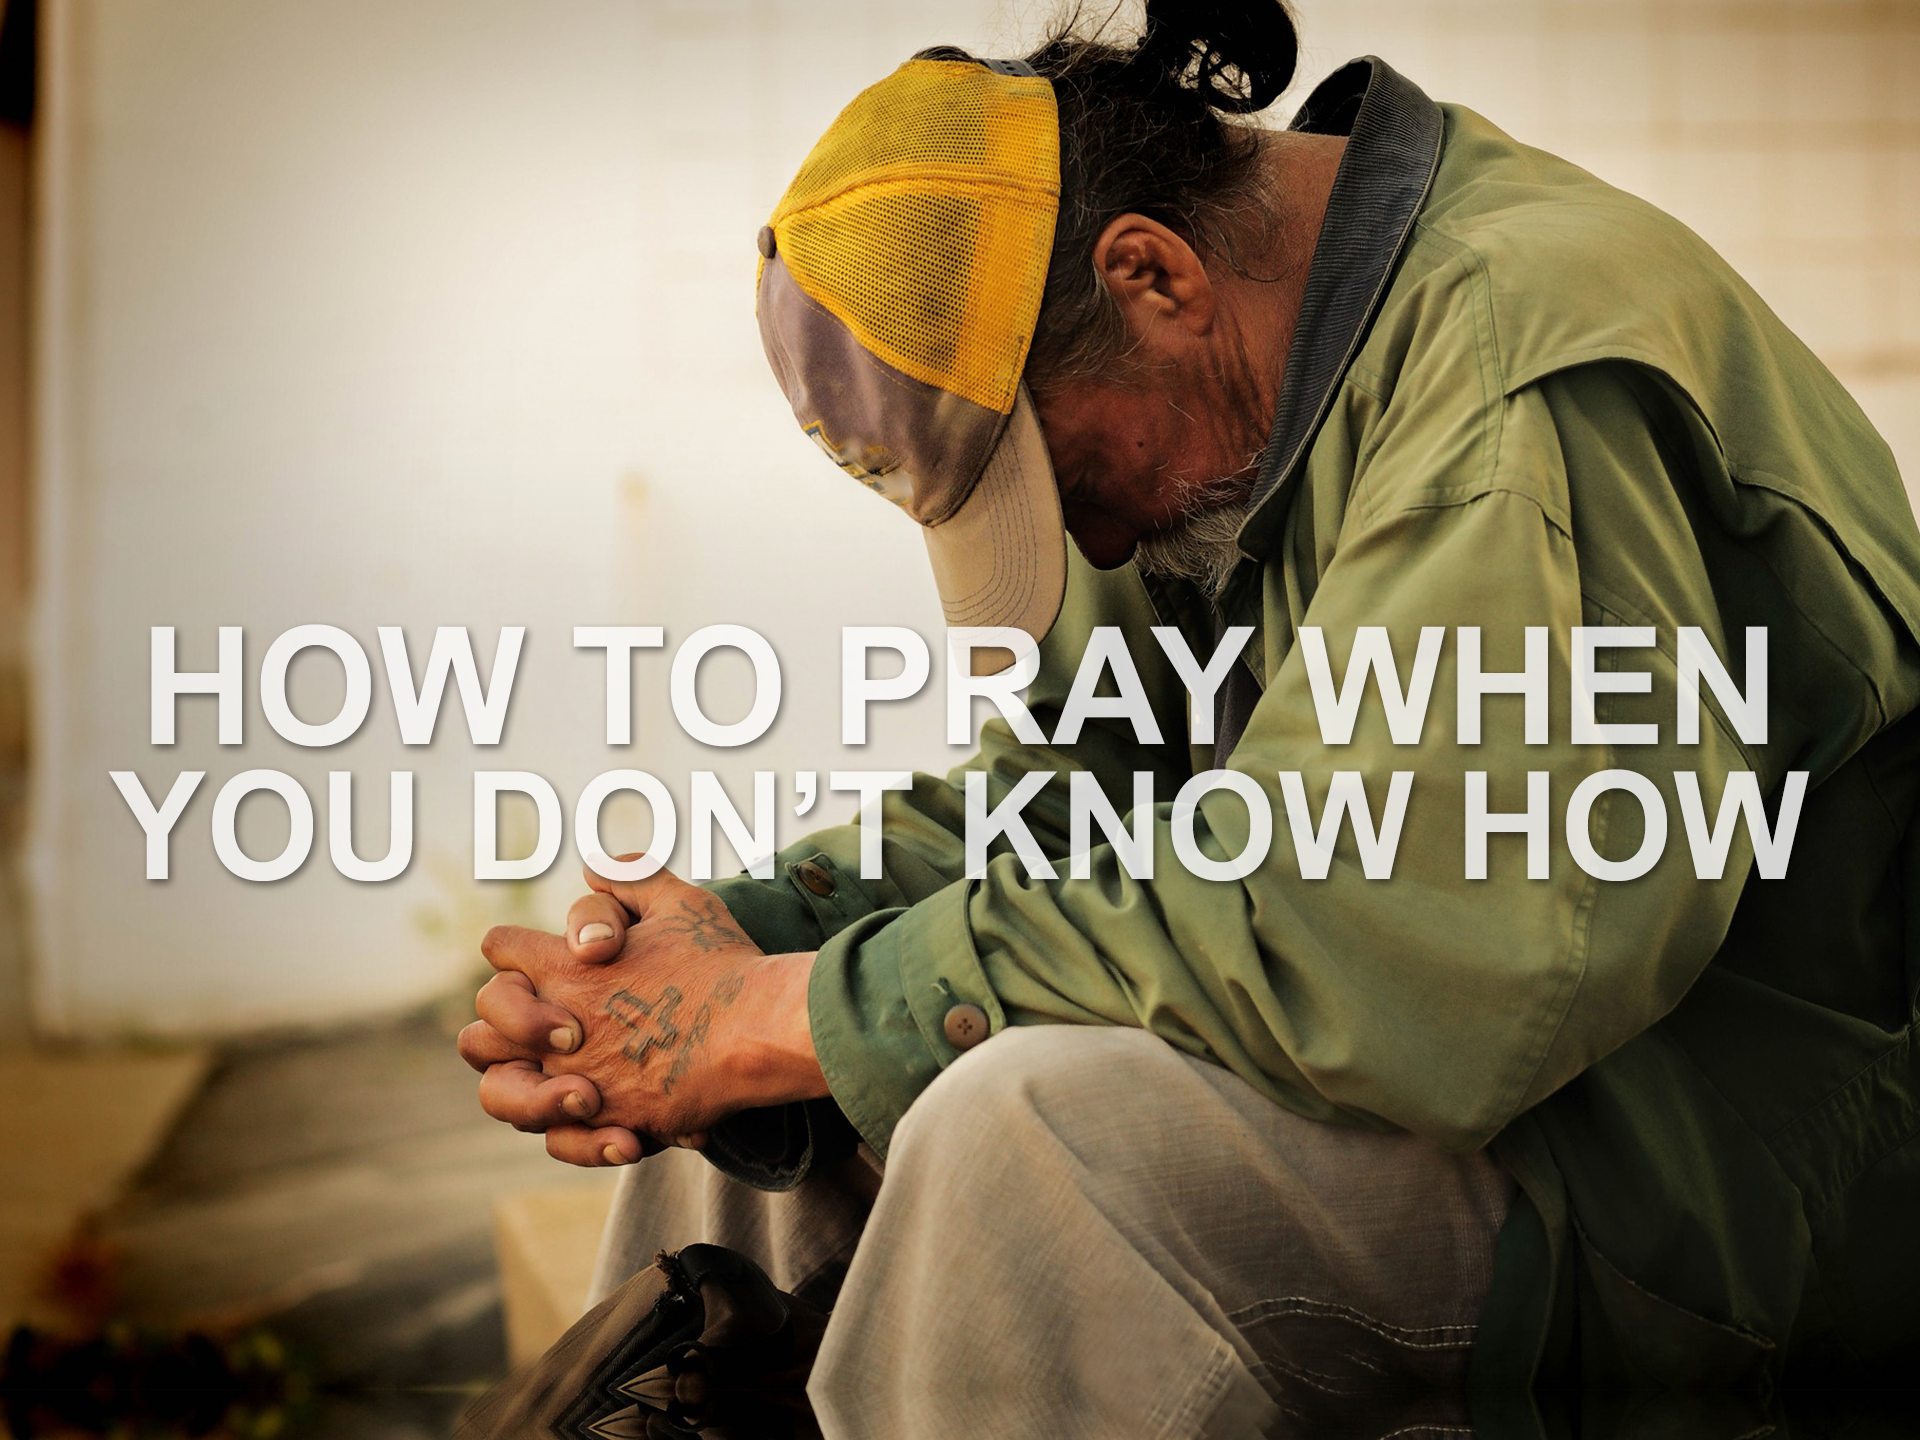 052619 how to pray when you dont know how.png